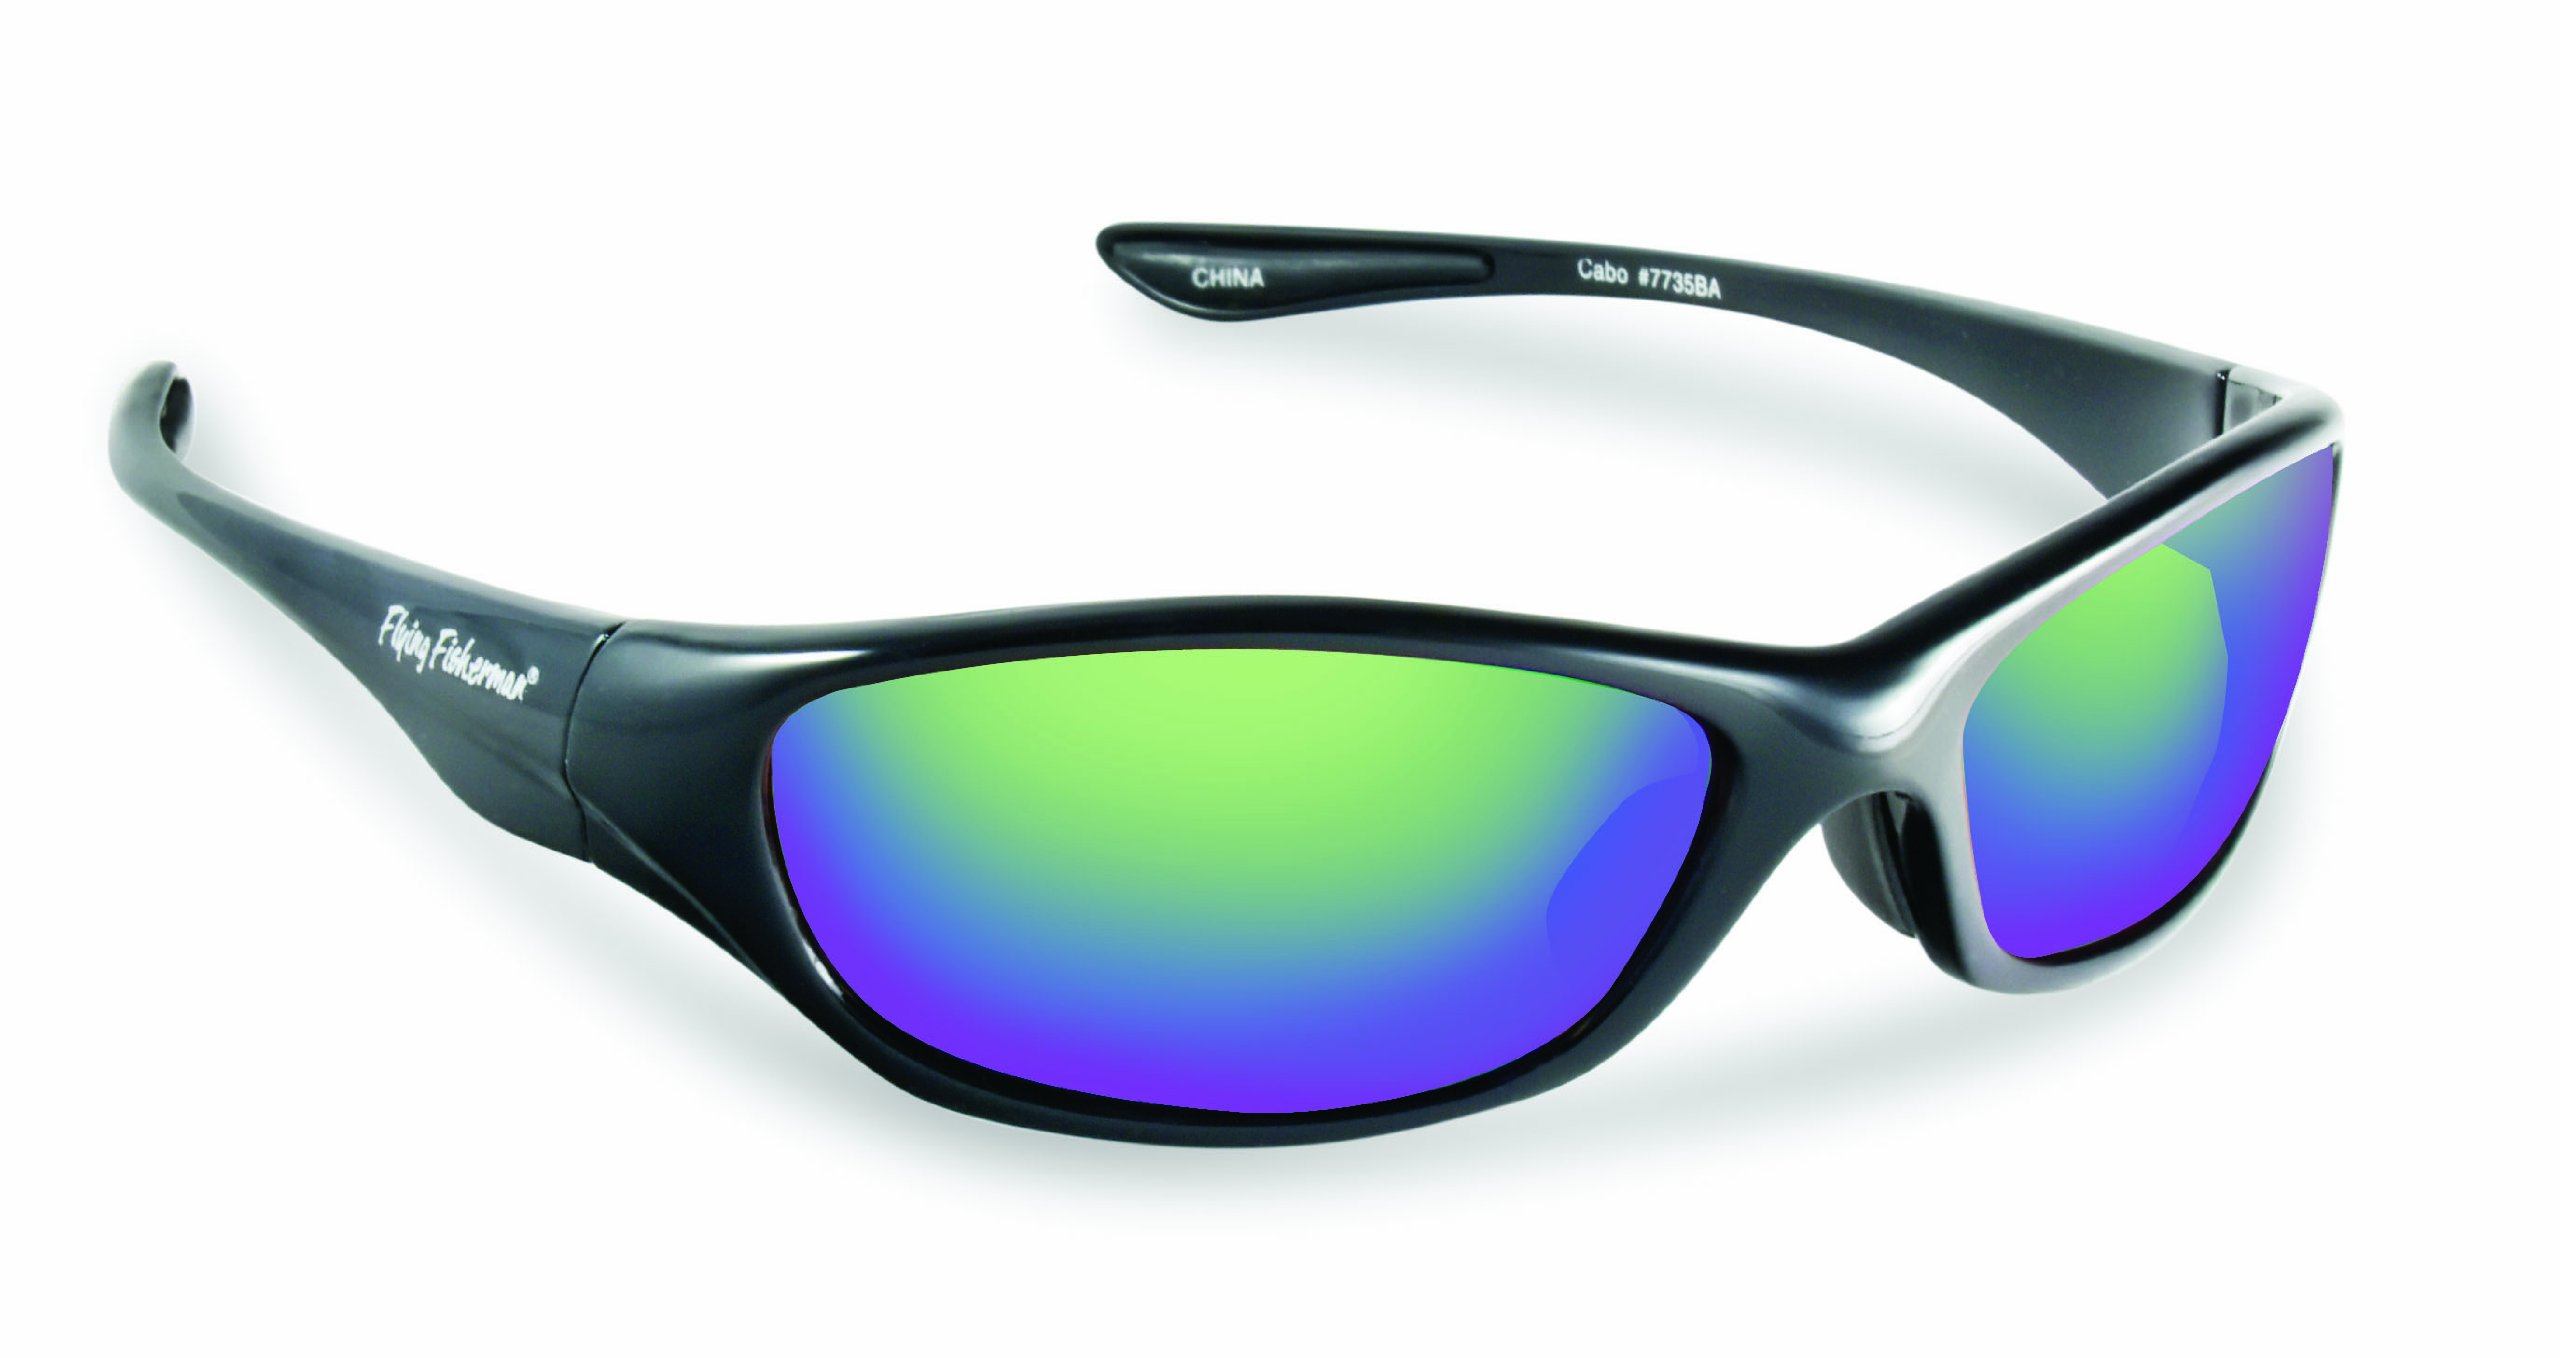 Flying Fisherman Cabo Polarized Sunglasses with AcuTint UV Blocker for Fishing and Outdoor Sports